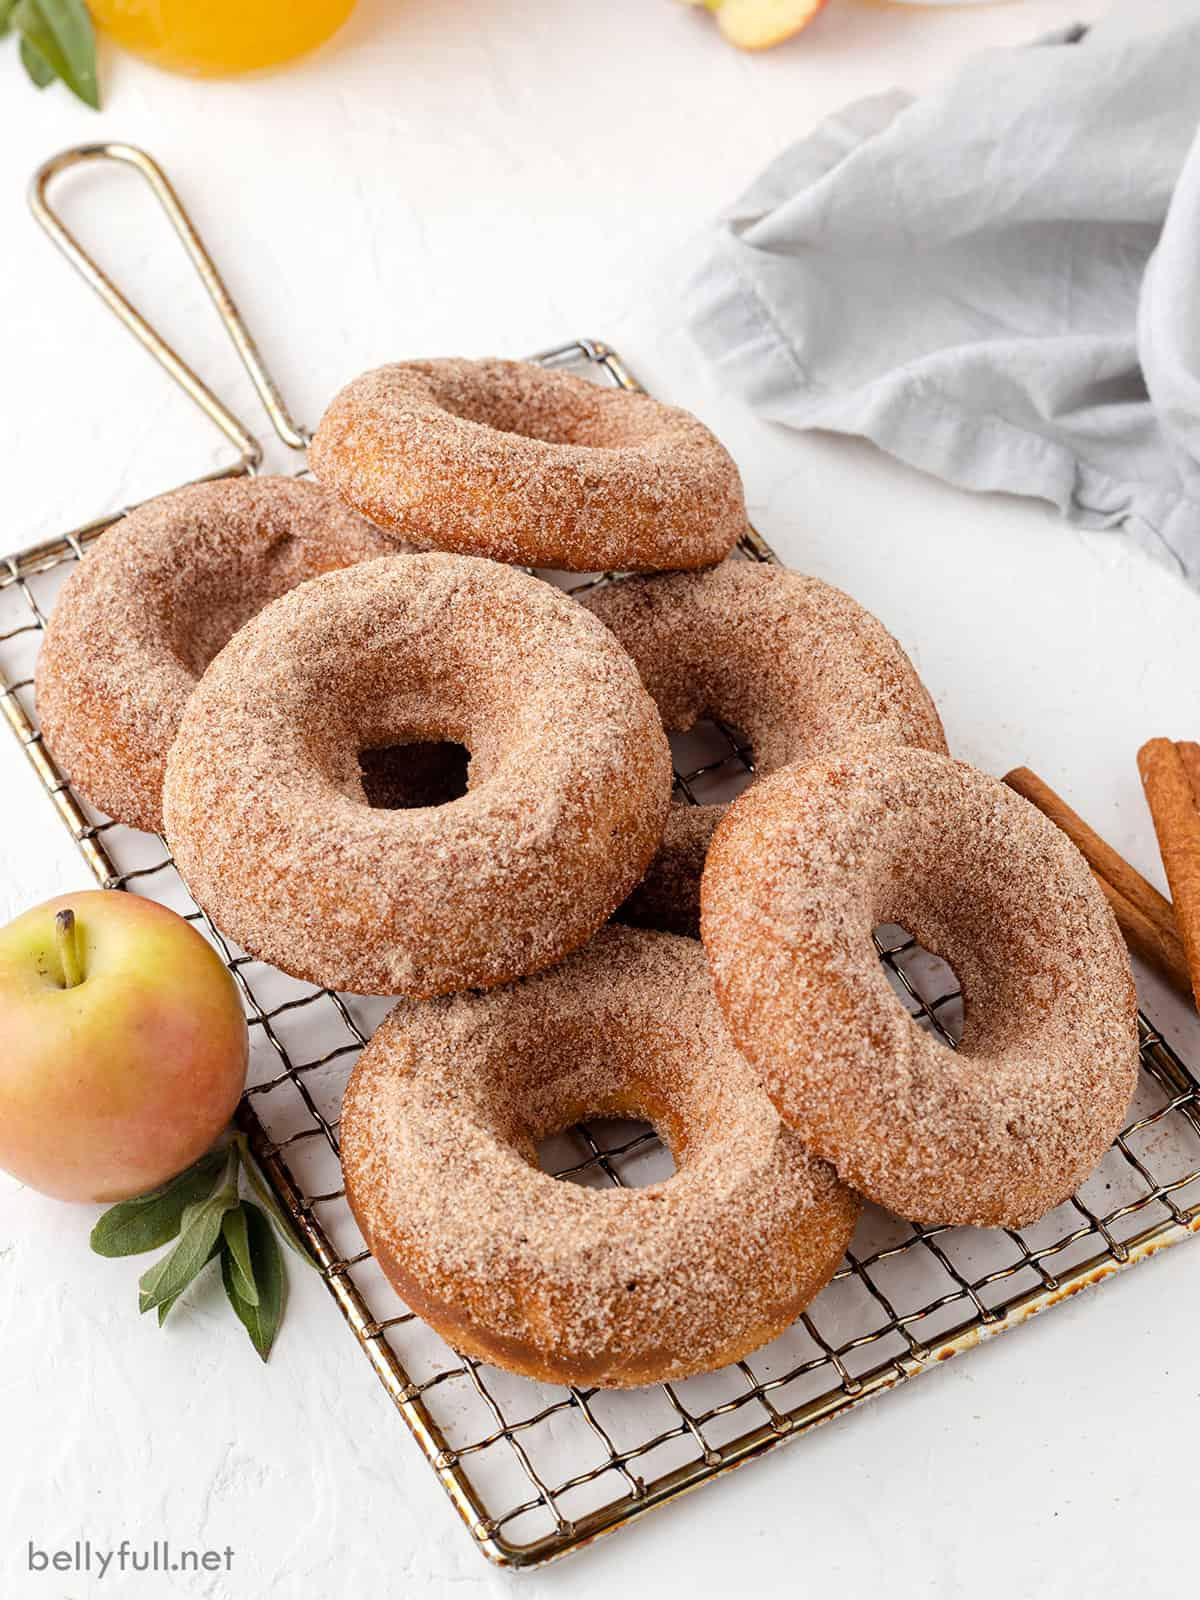 Baked apple cider donuts on a wire rack